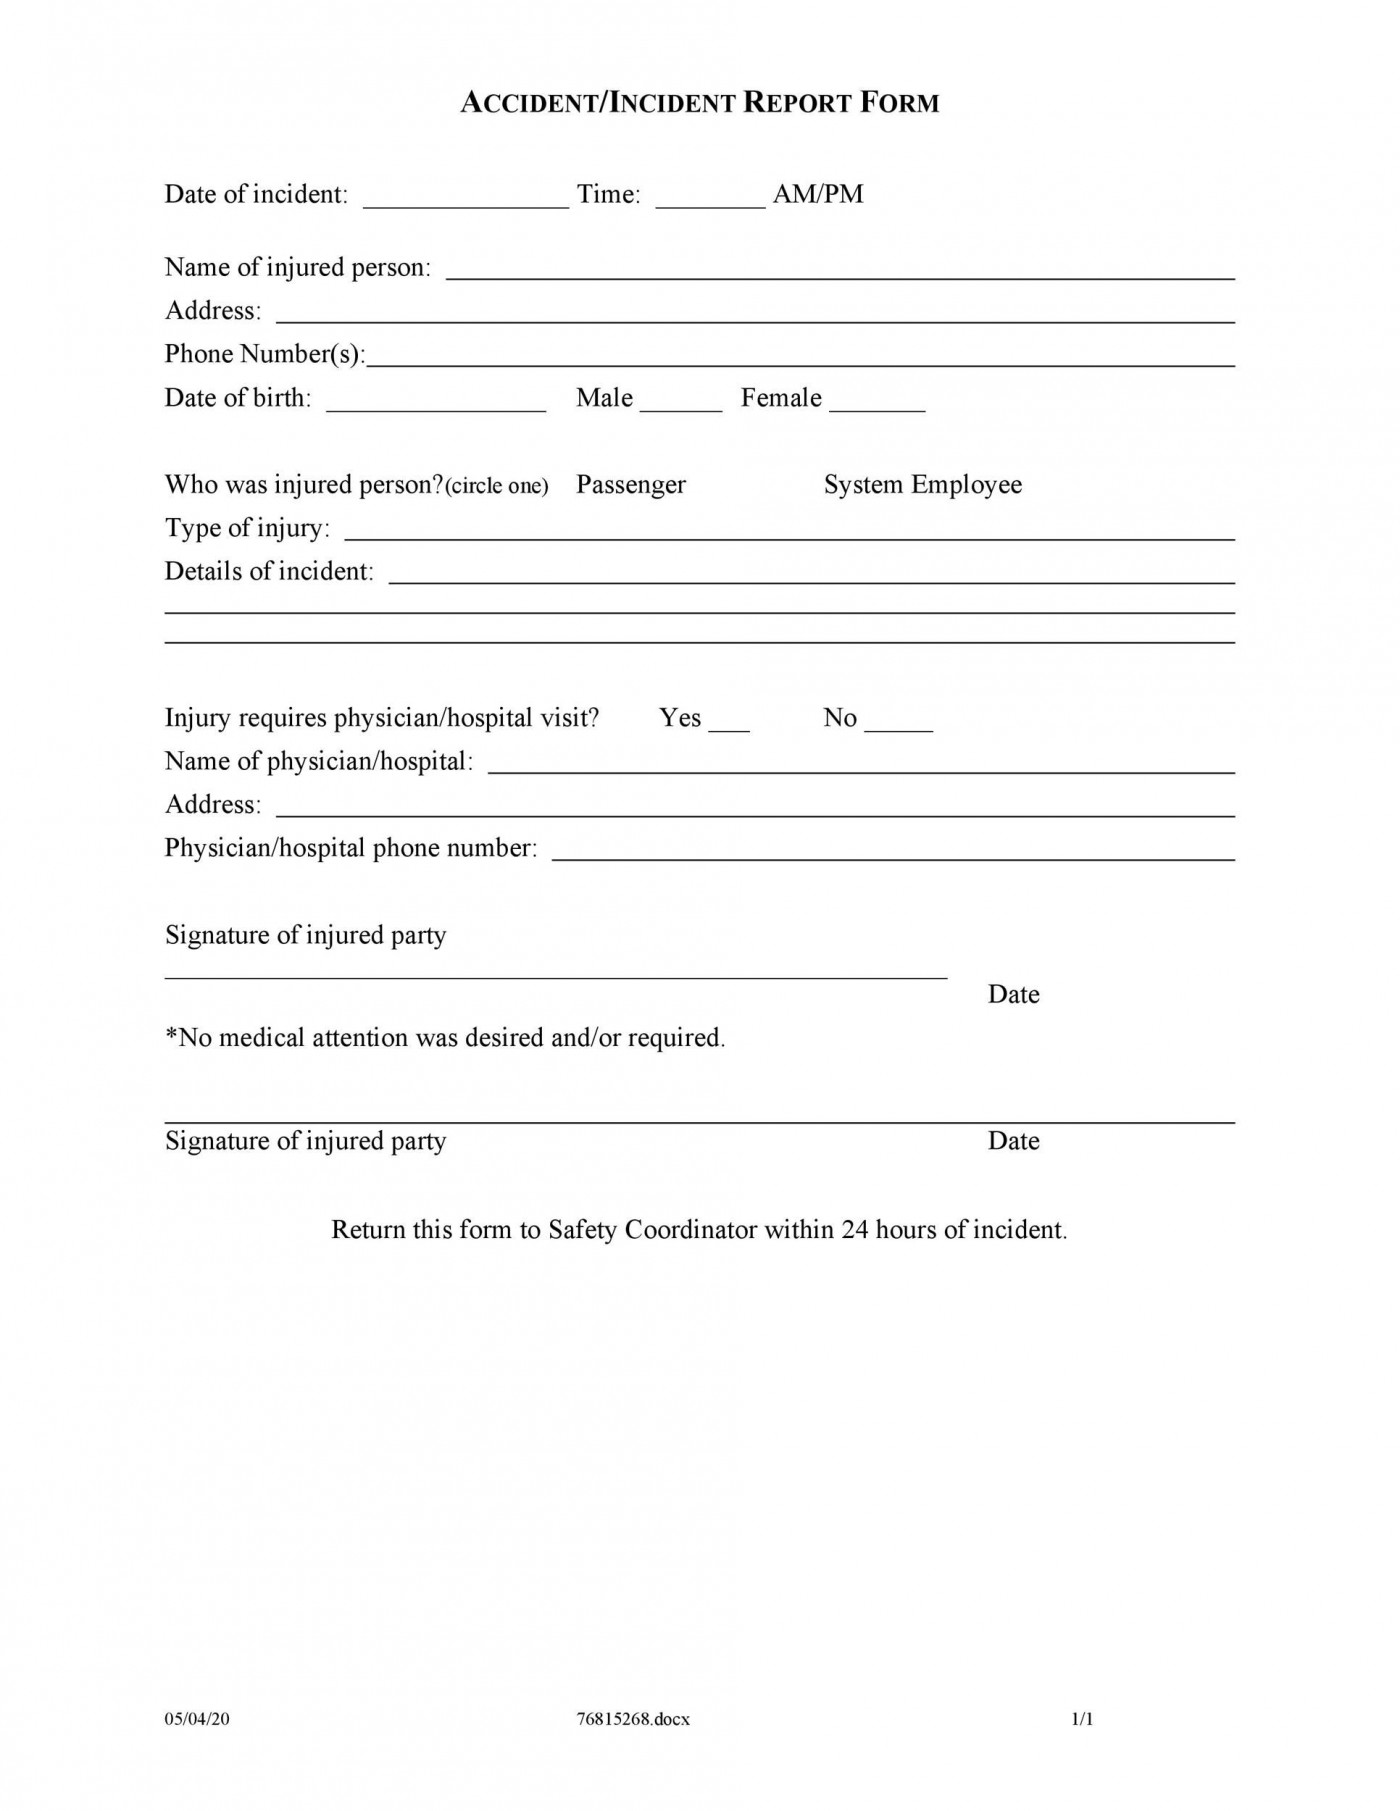 006 Wonderful Workplace Incident Report Form Template Nsw High Definition 1400